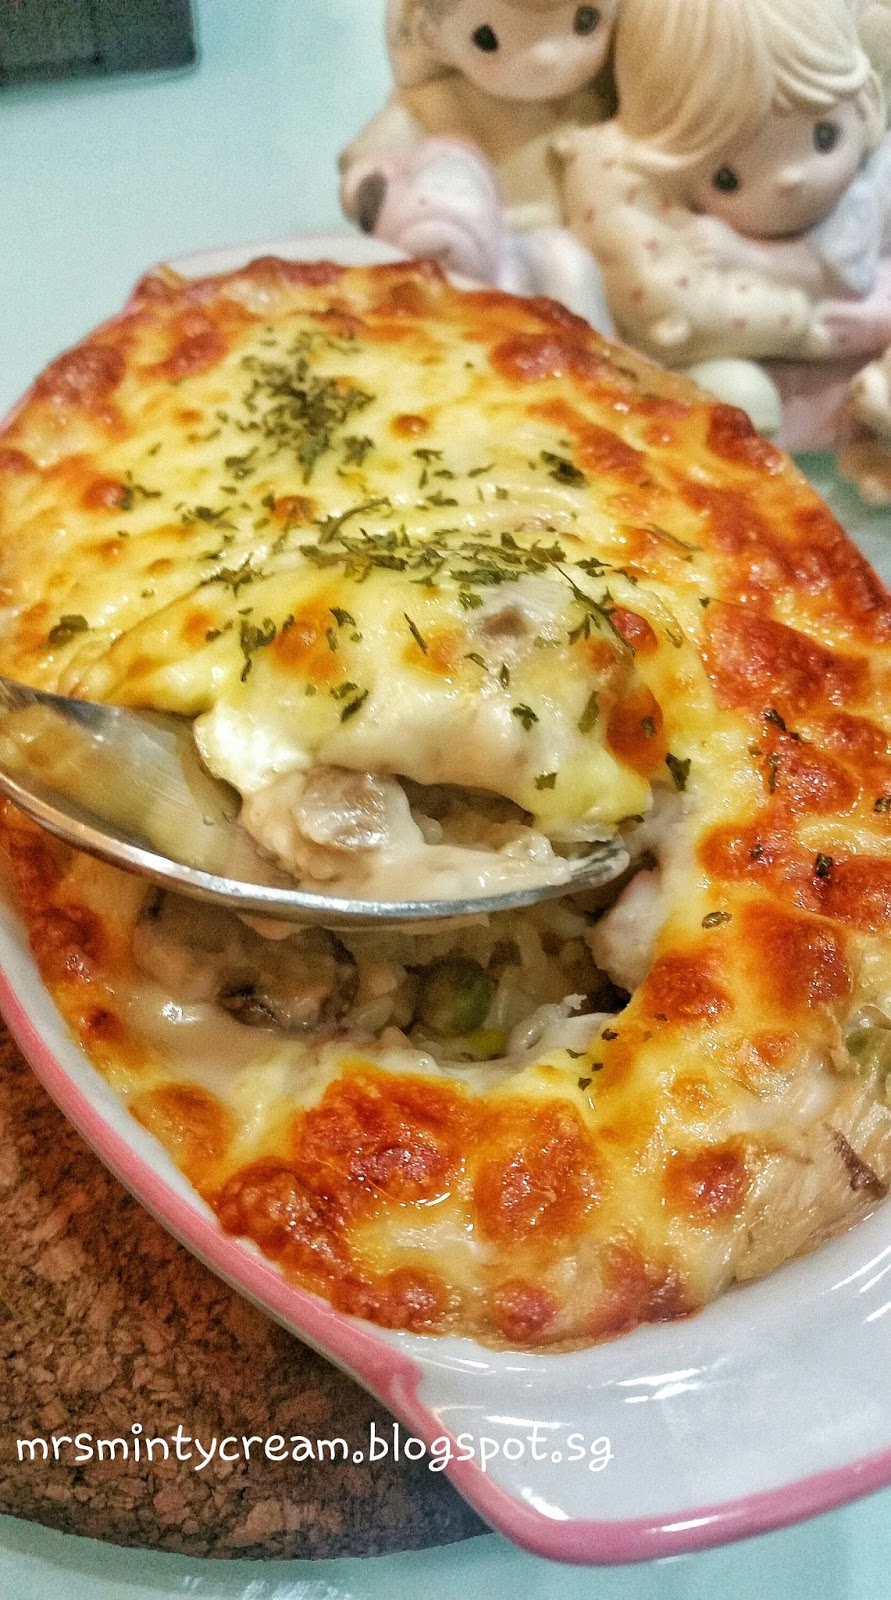 Mrs Minty Cream: #37 - Cheesy Chicken Baked Rice